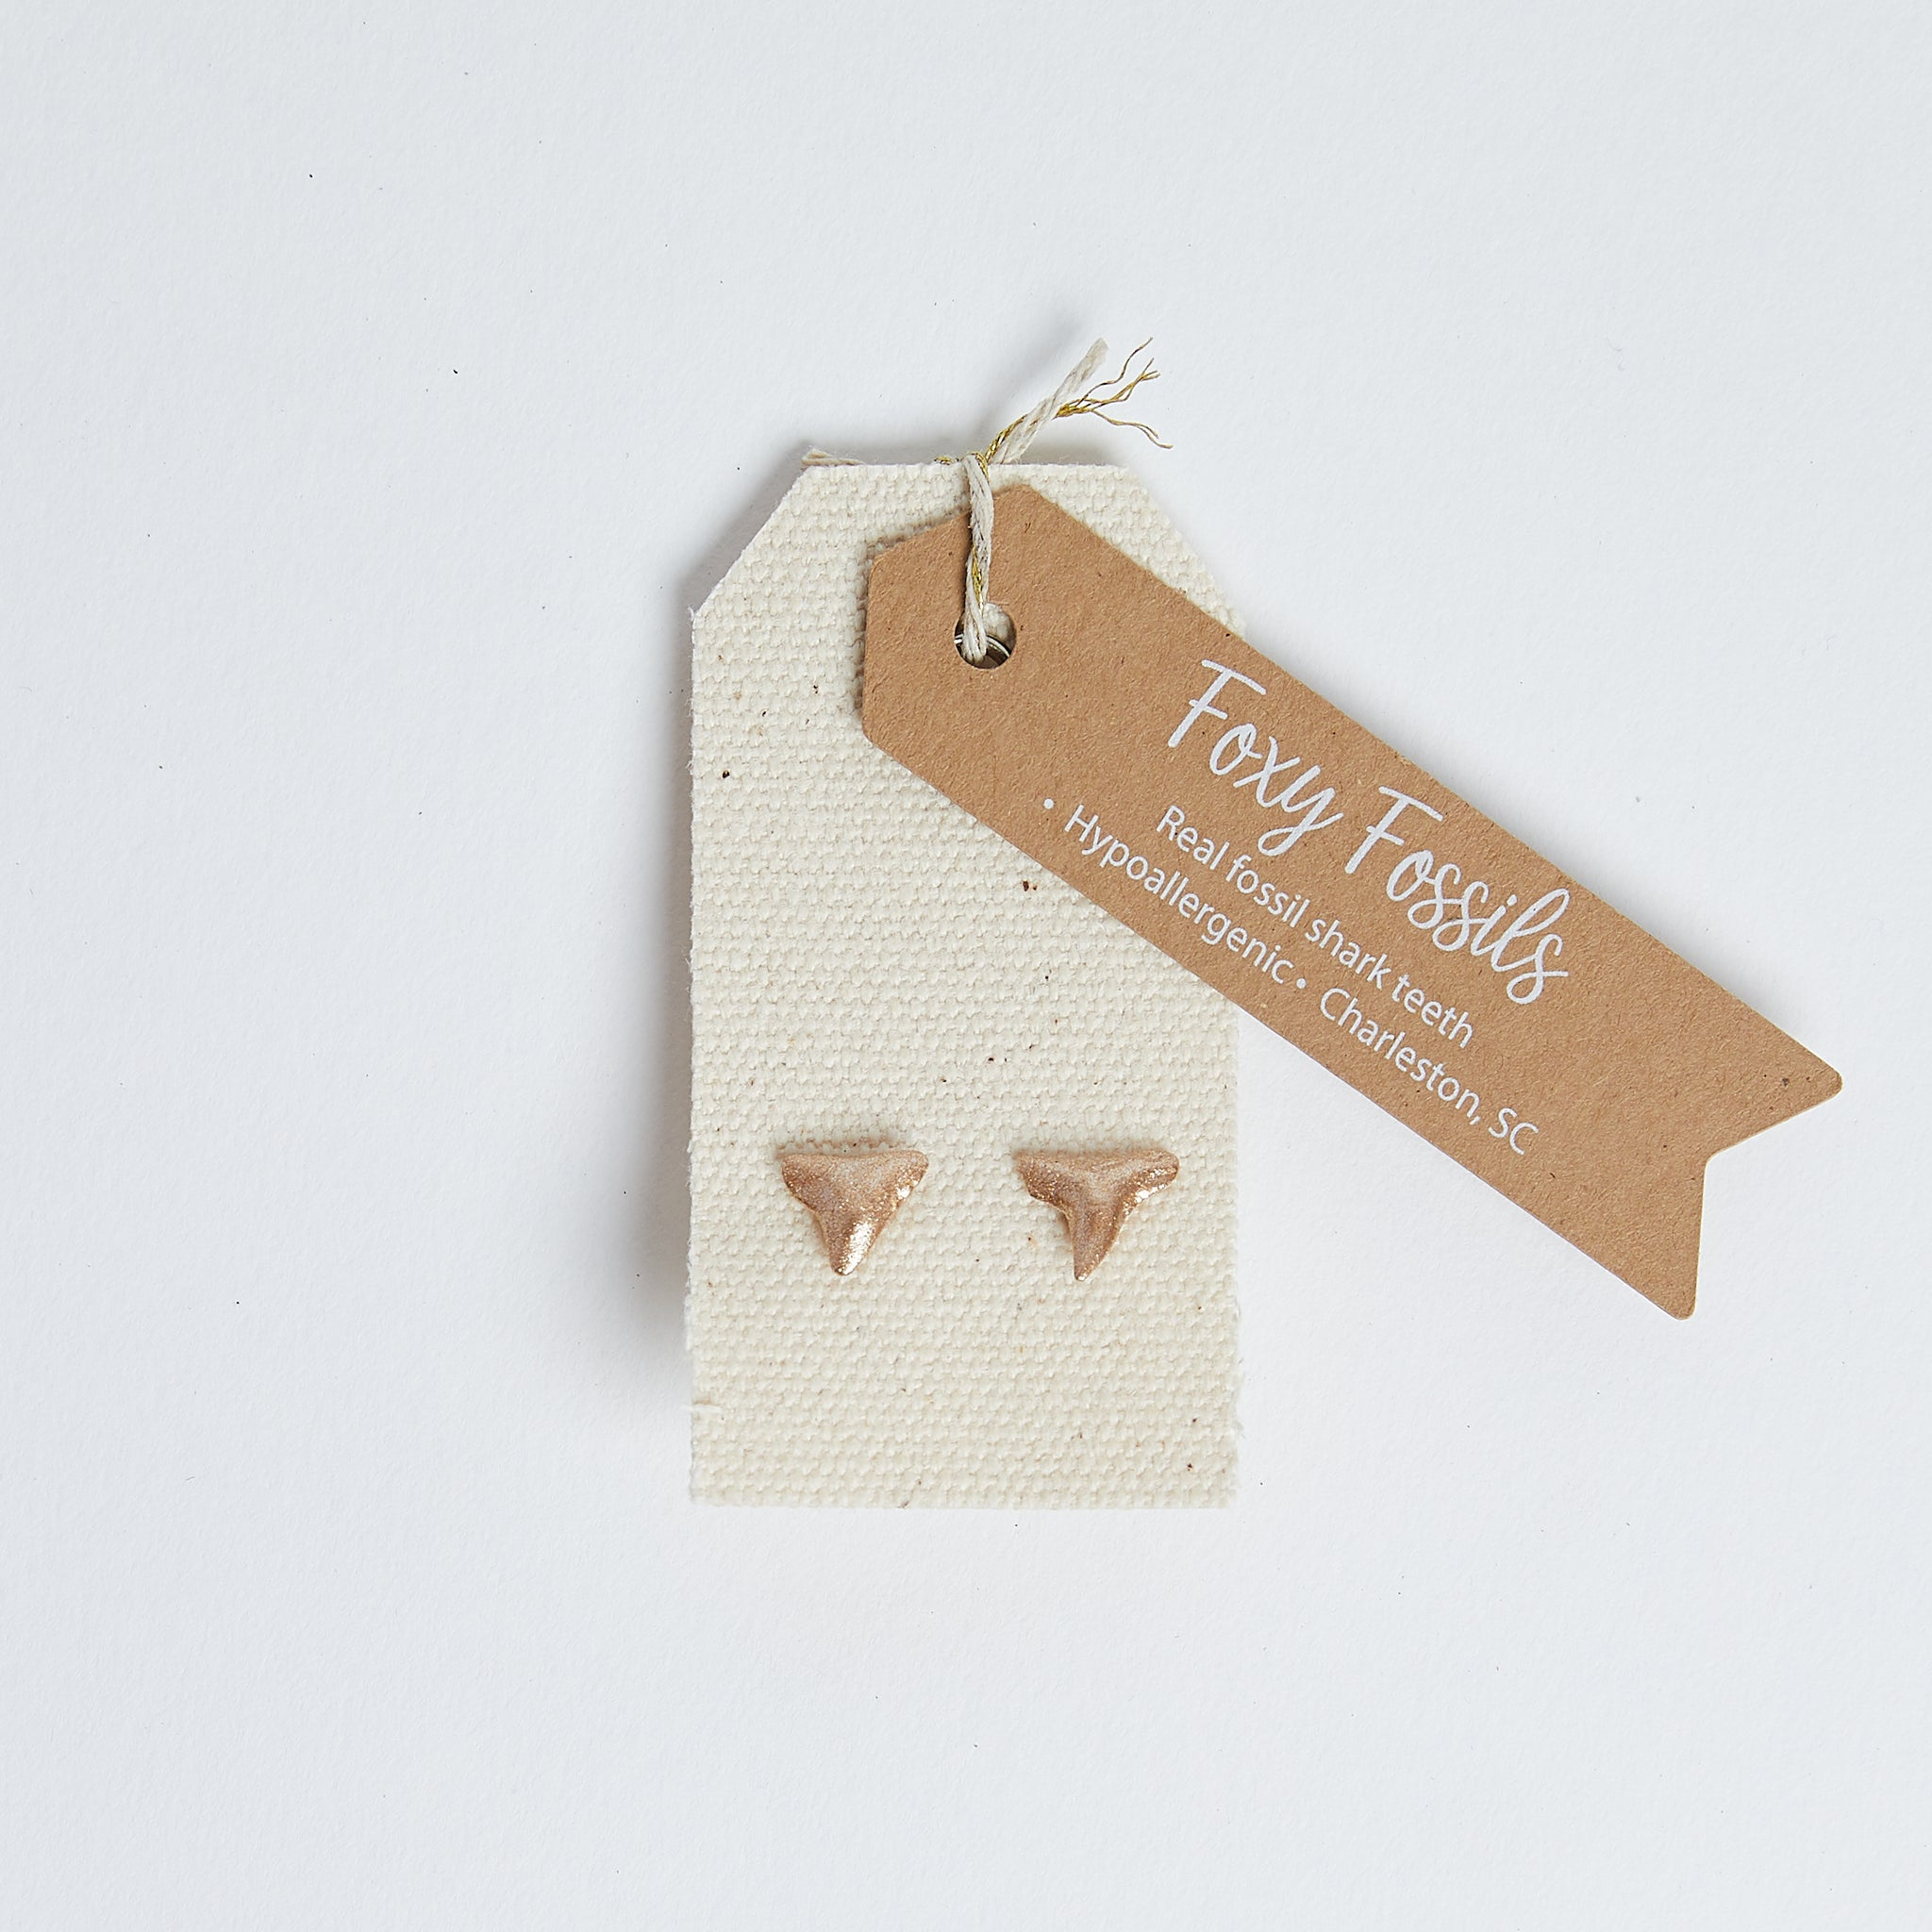 Gold Shark Tooth Stud Earrings | real shark tooth earrings gold- Foxy Fossils